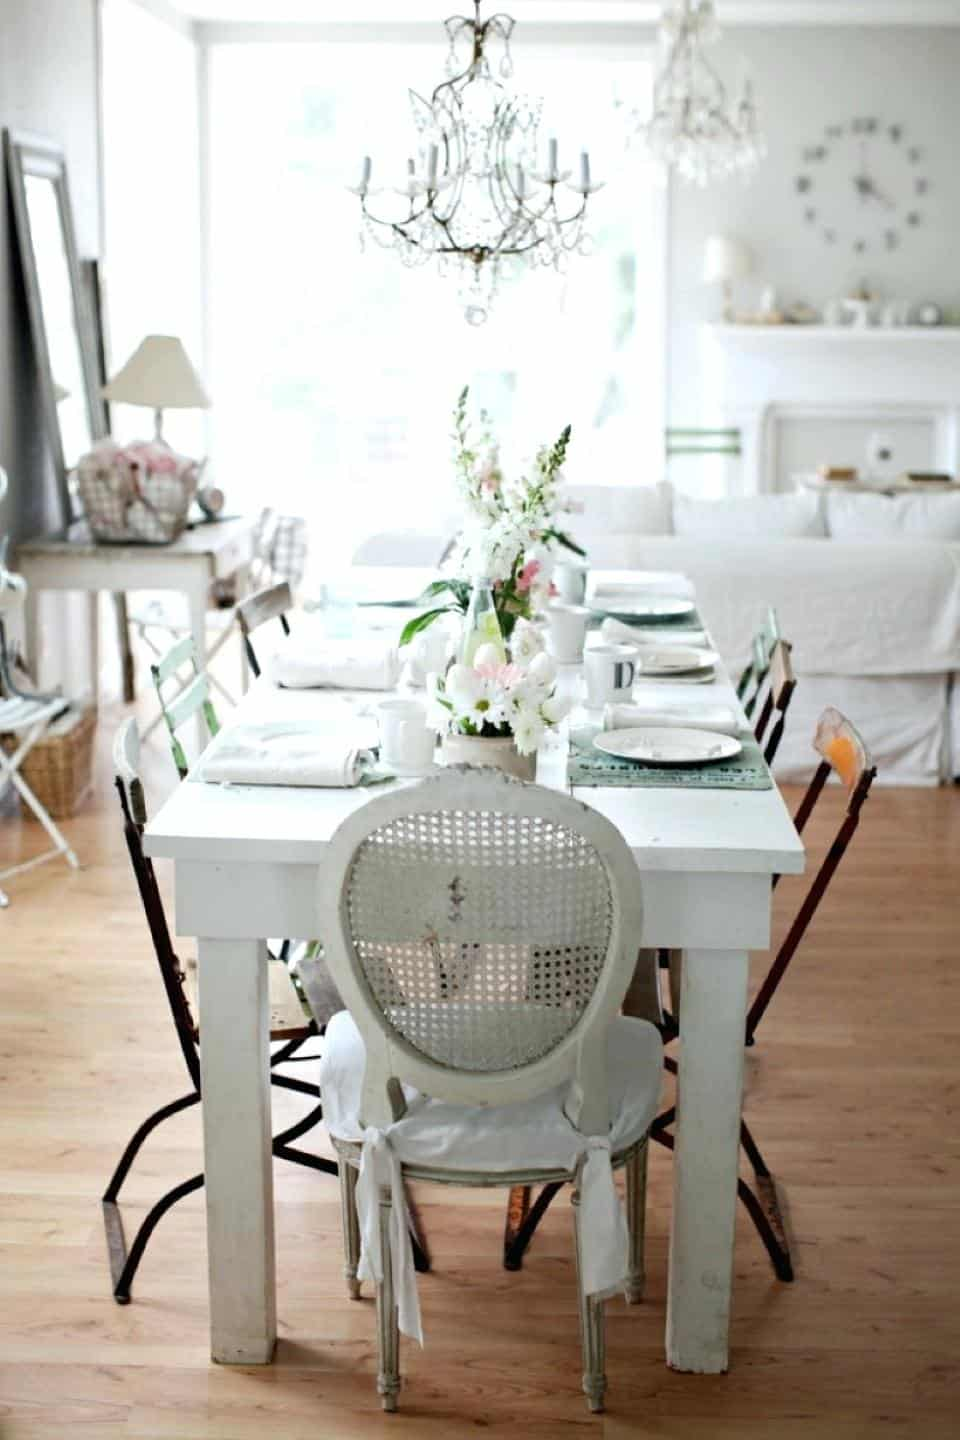 home-depot-chandelier-lighting-crystal-chandelier-with-rustic-chic-white-dining-room-spanish-brass-chandelier